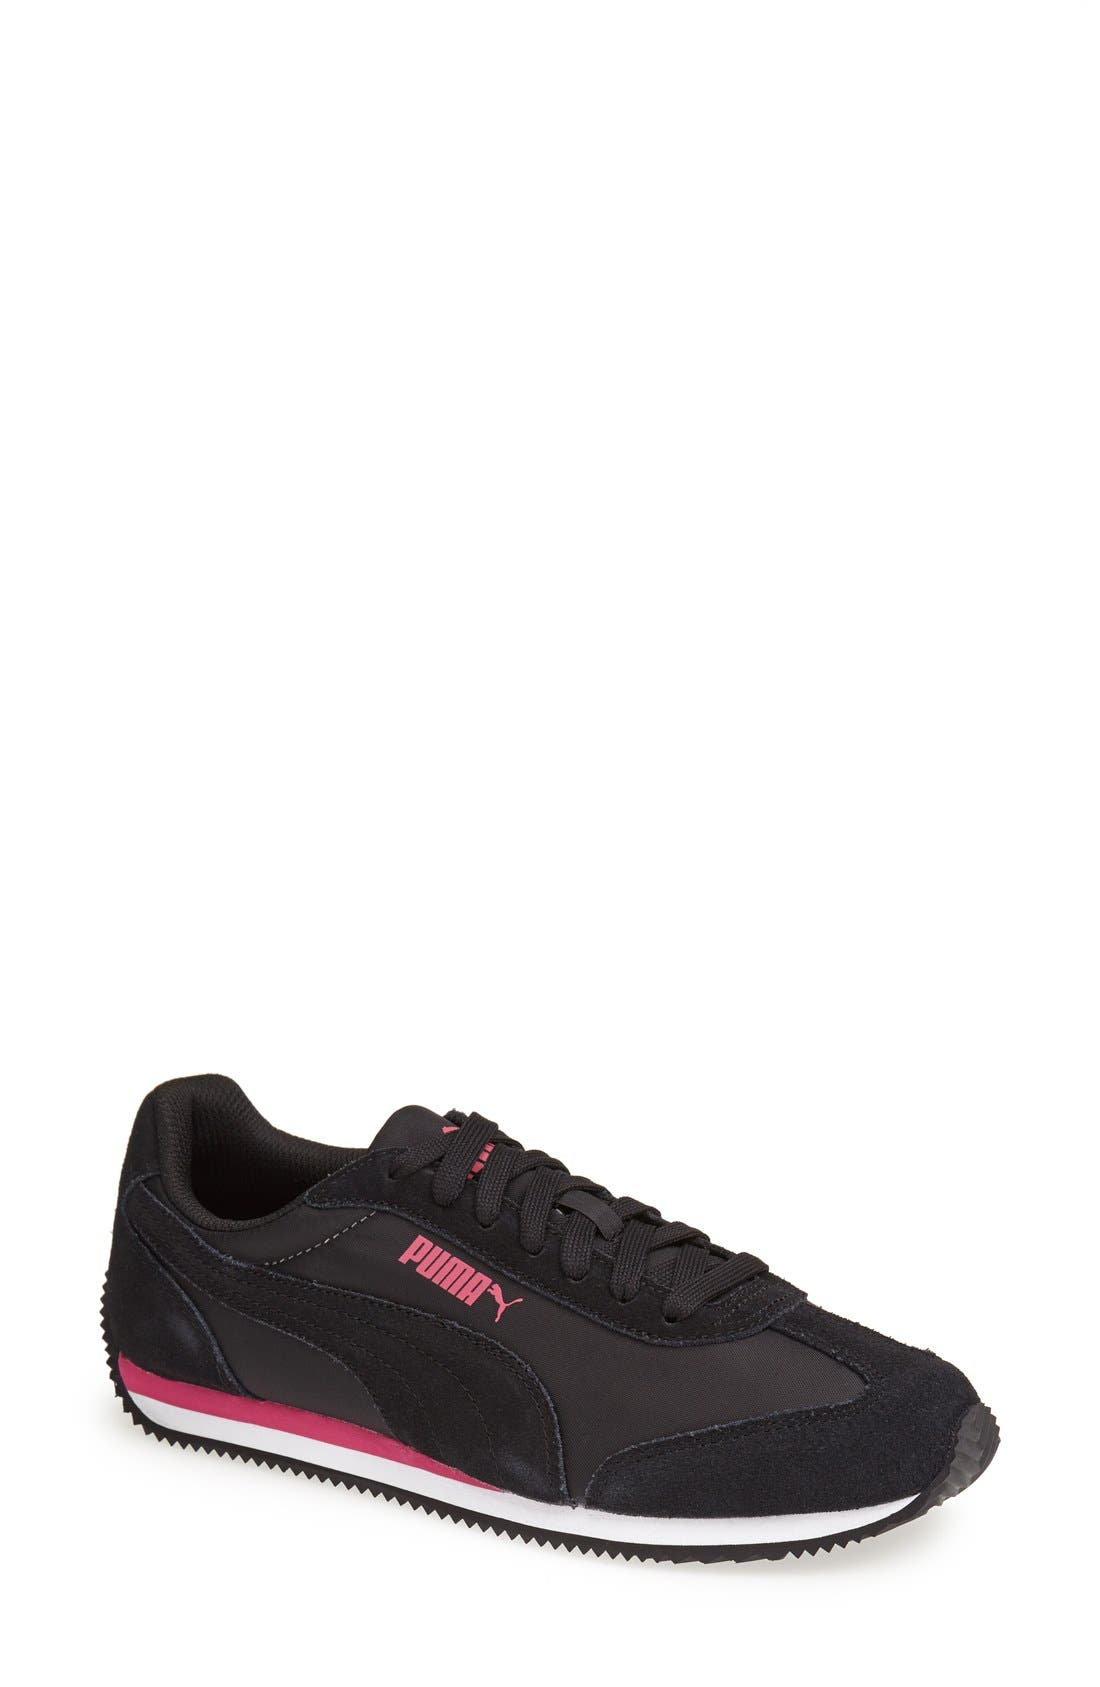 Alternate Image 1 Selected - PUMA 'Rio Speed NL' Sneaker (Women)